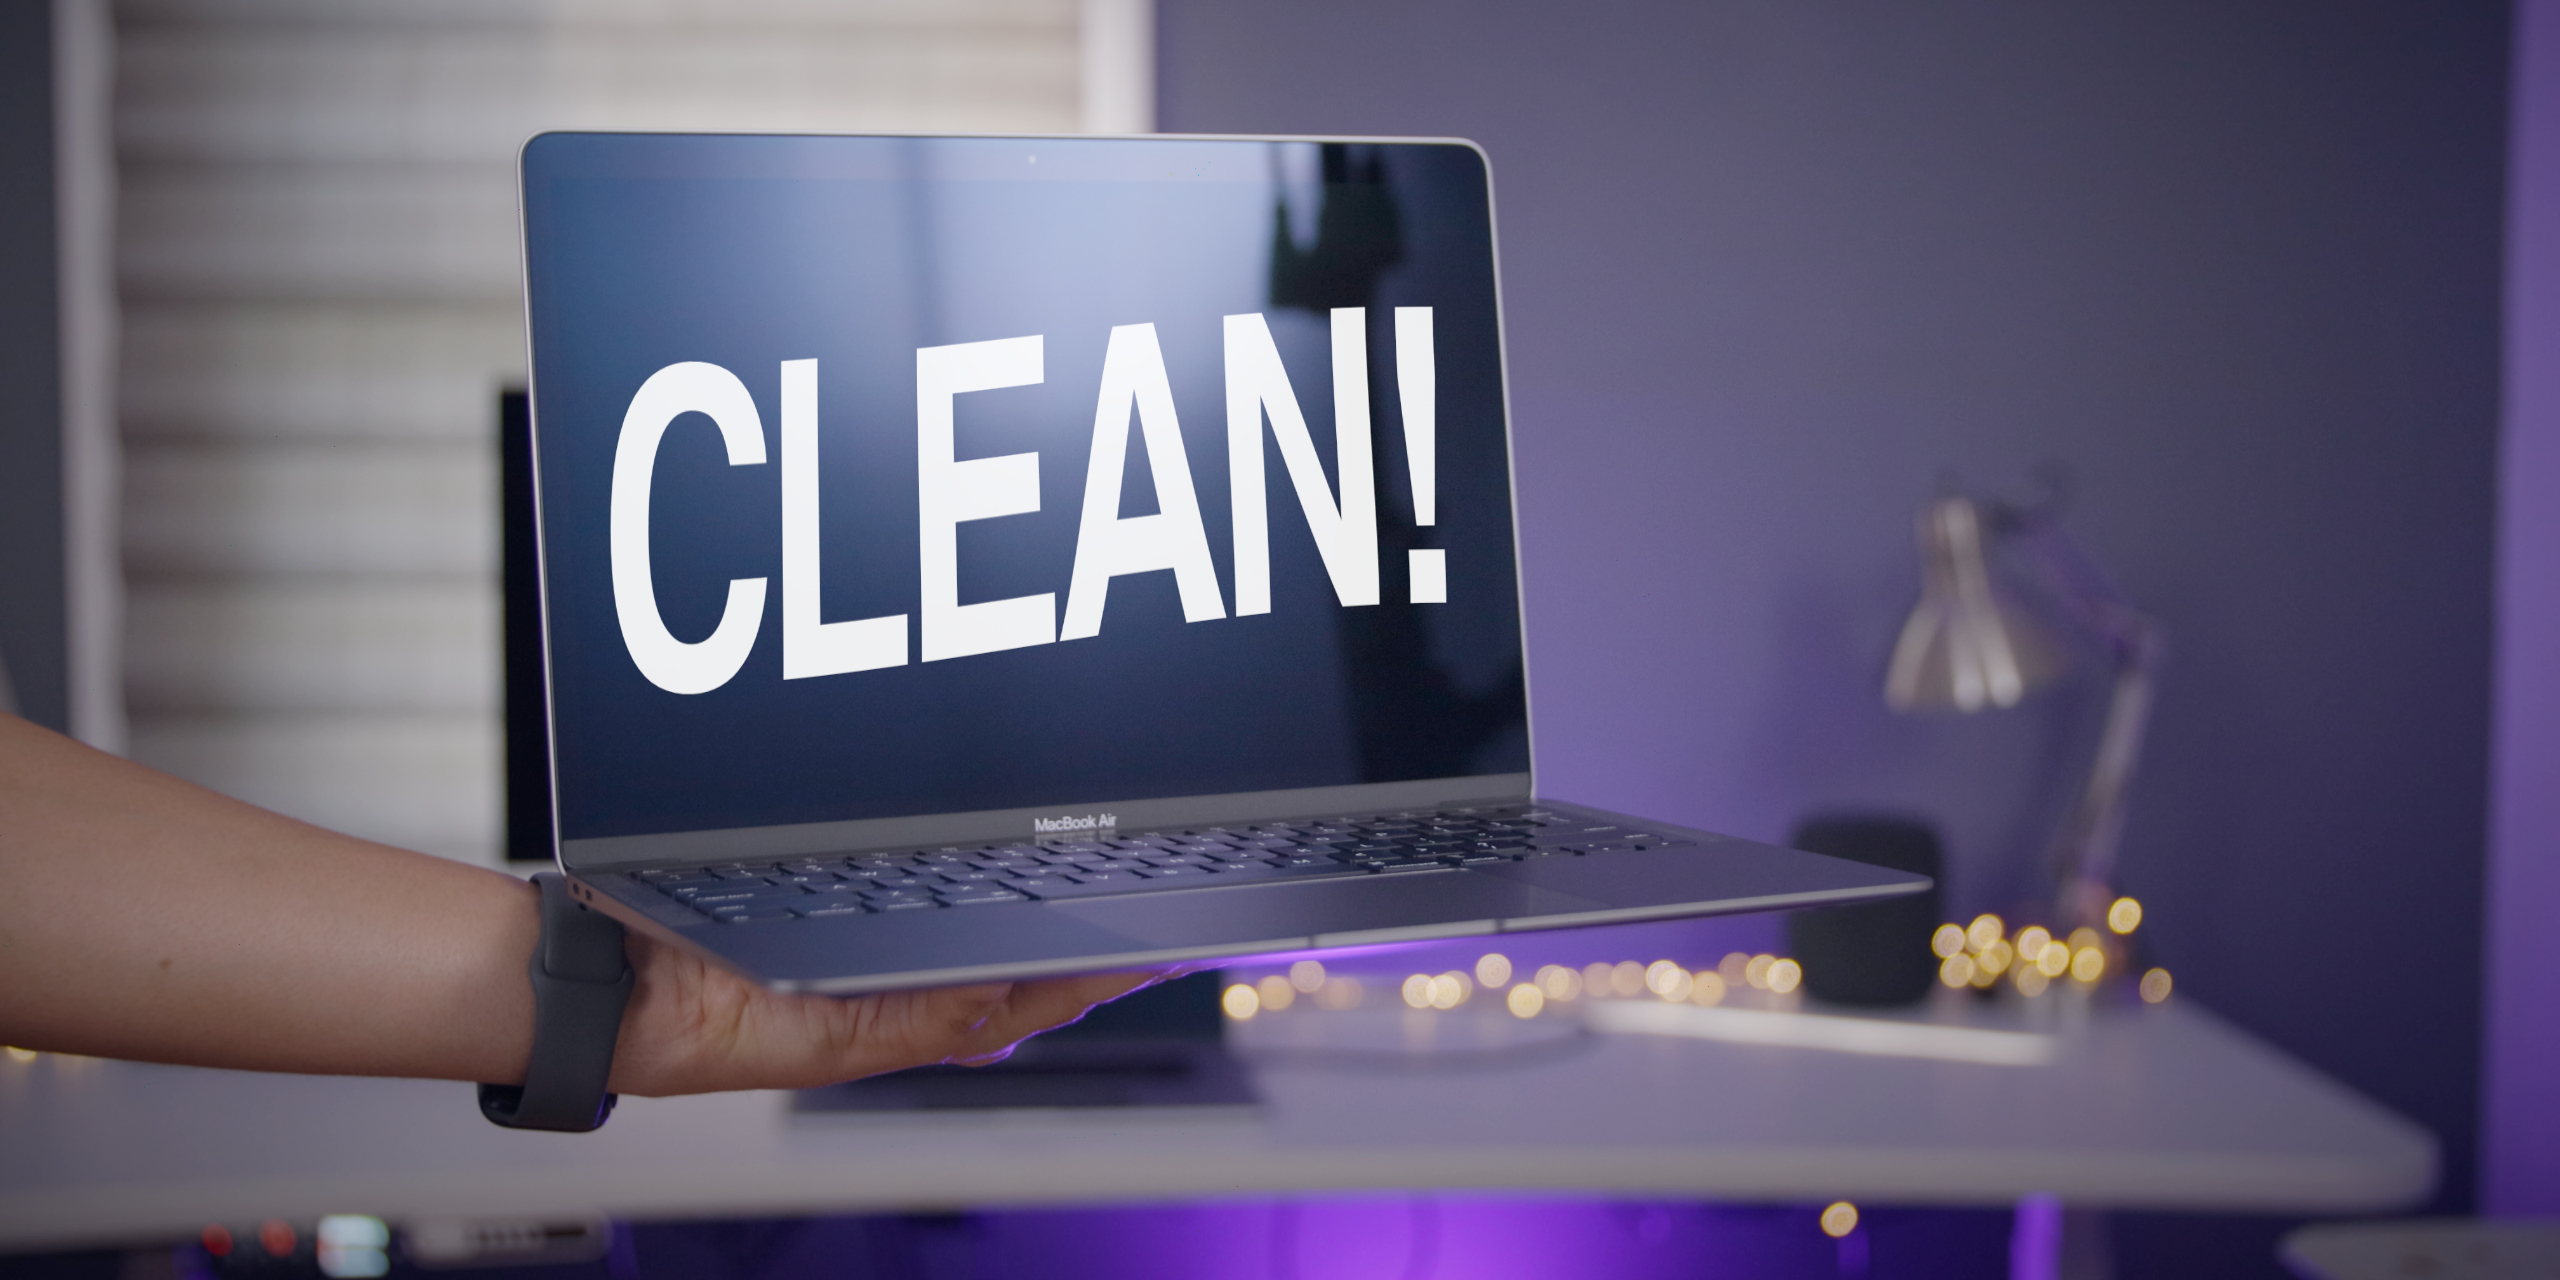 Mac 101: the best way to clean your MacBook's screen [Video] - 9to5Mac